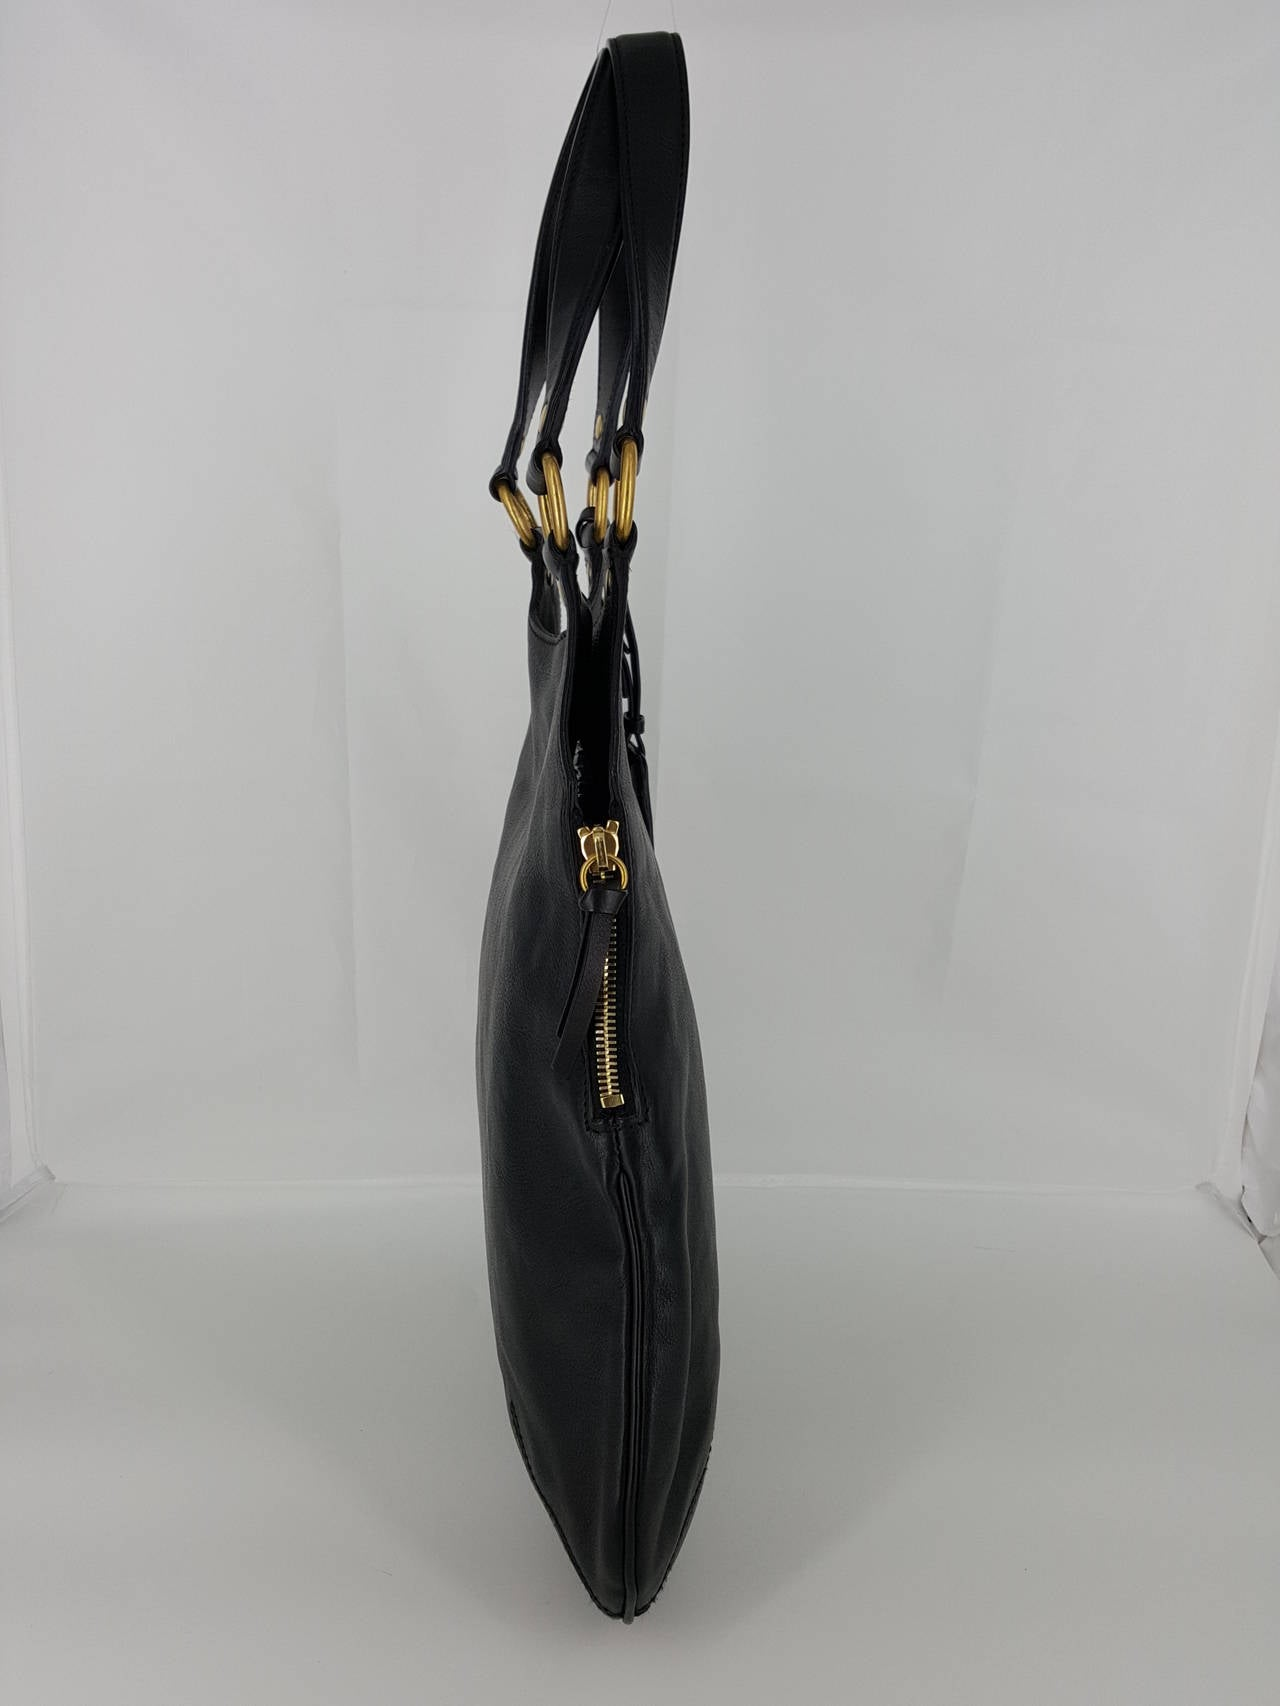 Women's YSL Yves Saint Laurent Black Leather Tribute Bag. For Sale